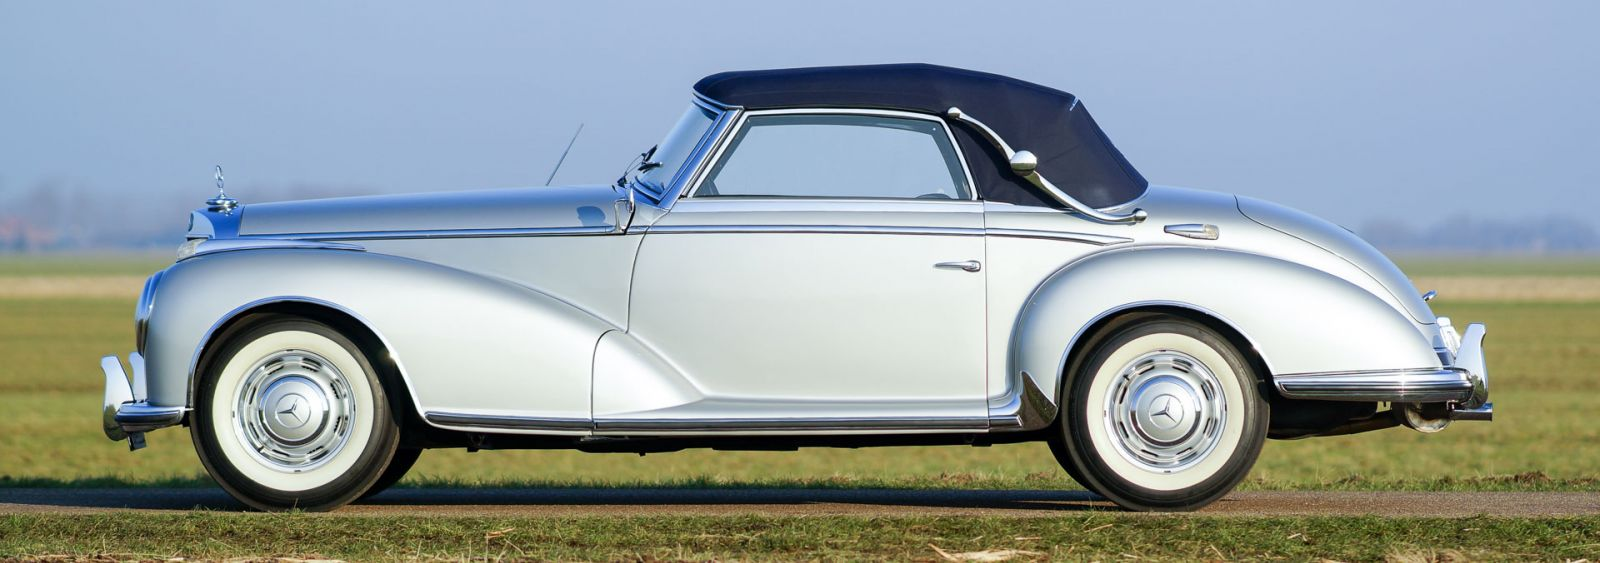 Mercedes benz 300 s cabriolet 1953 welcome to for 1953 mercedes benz